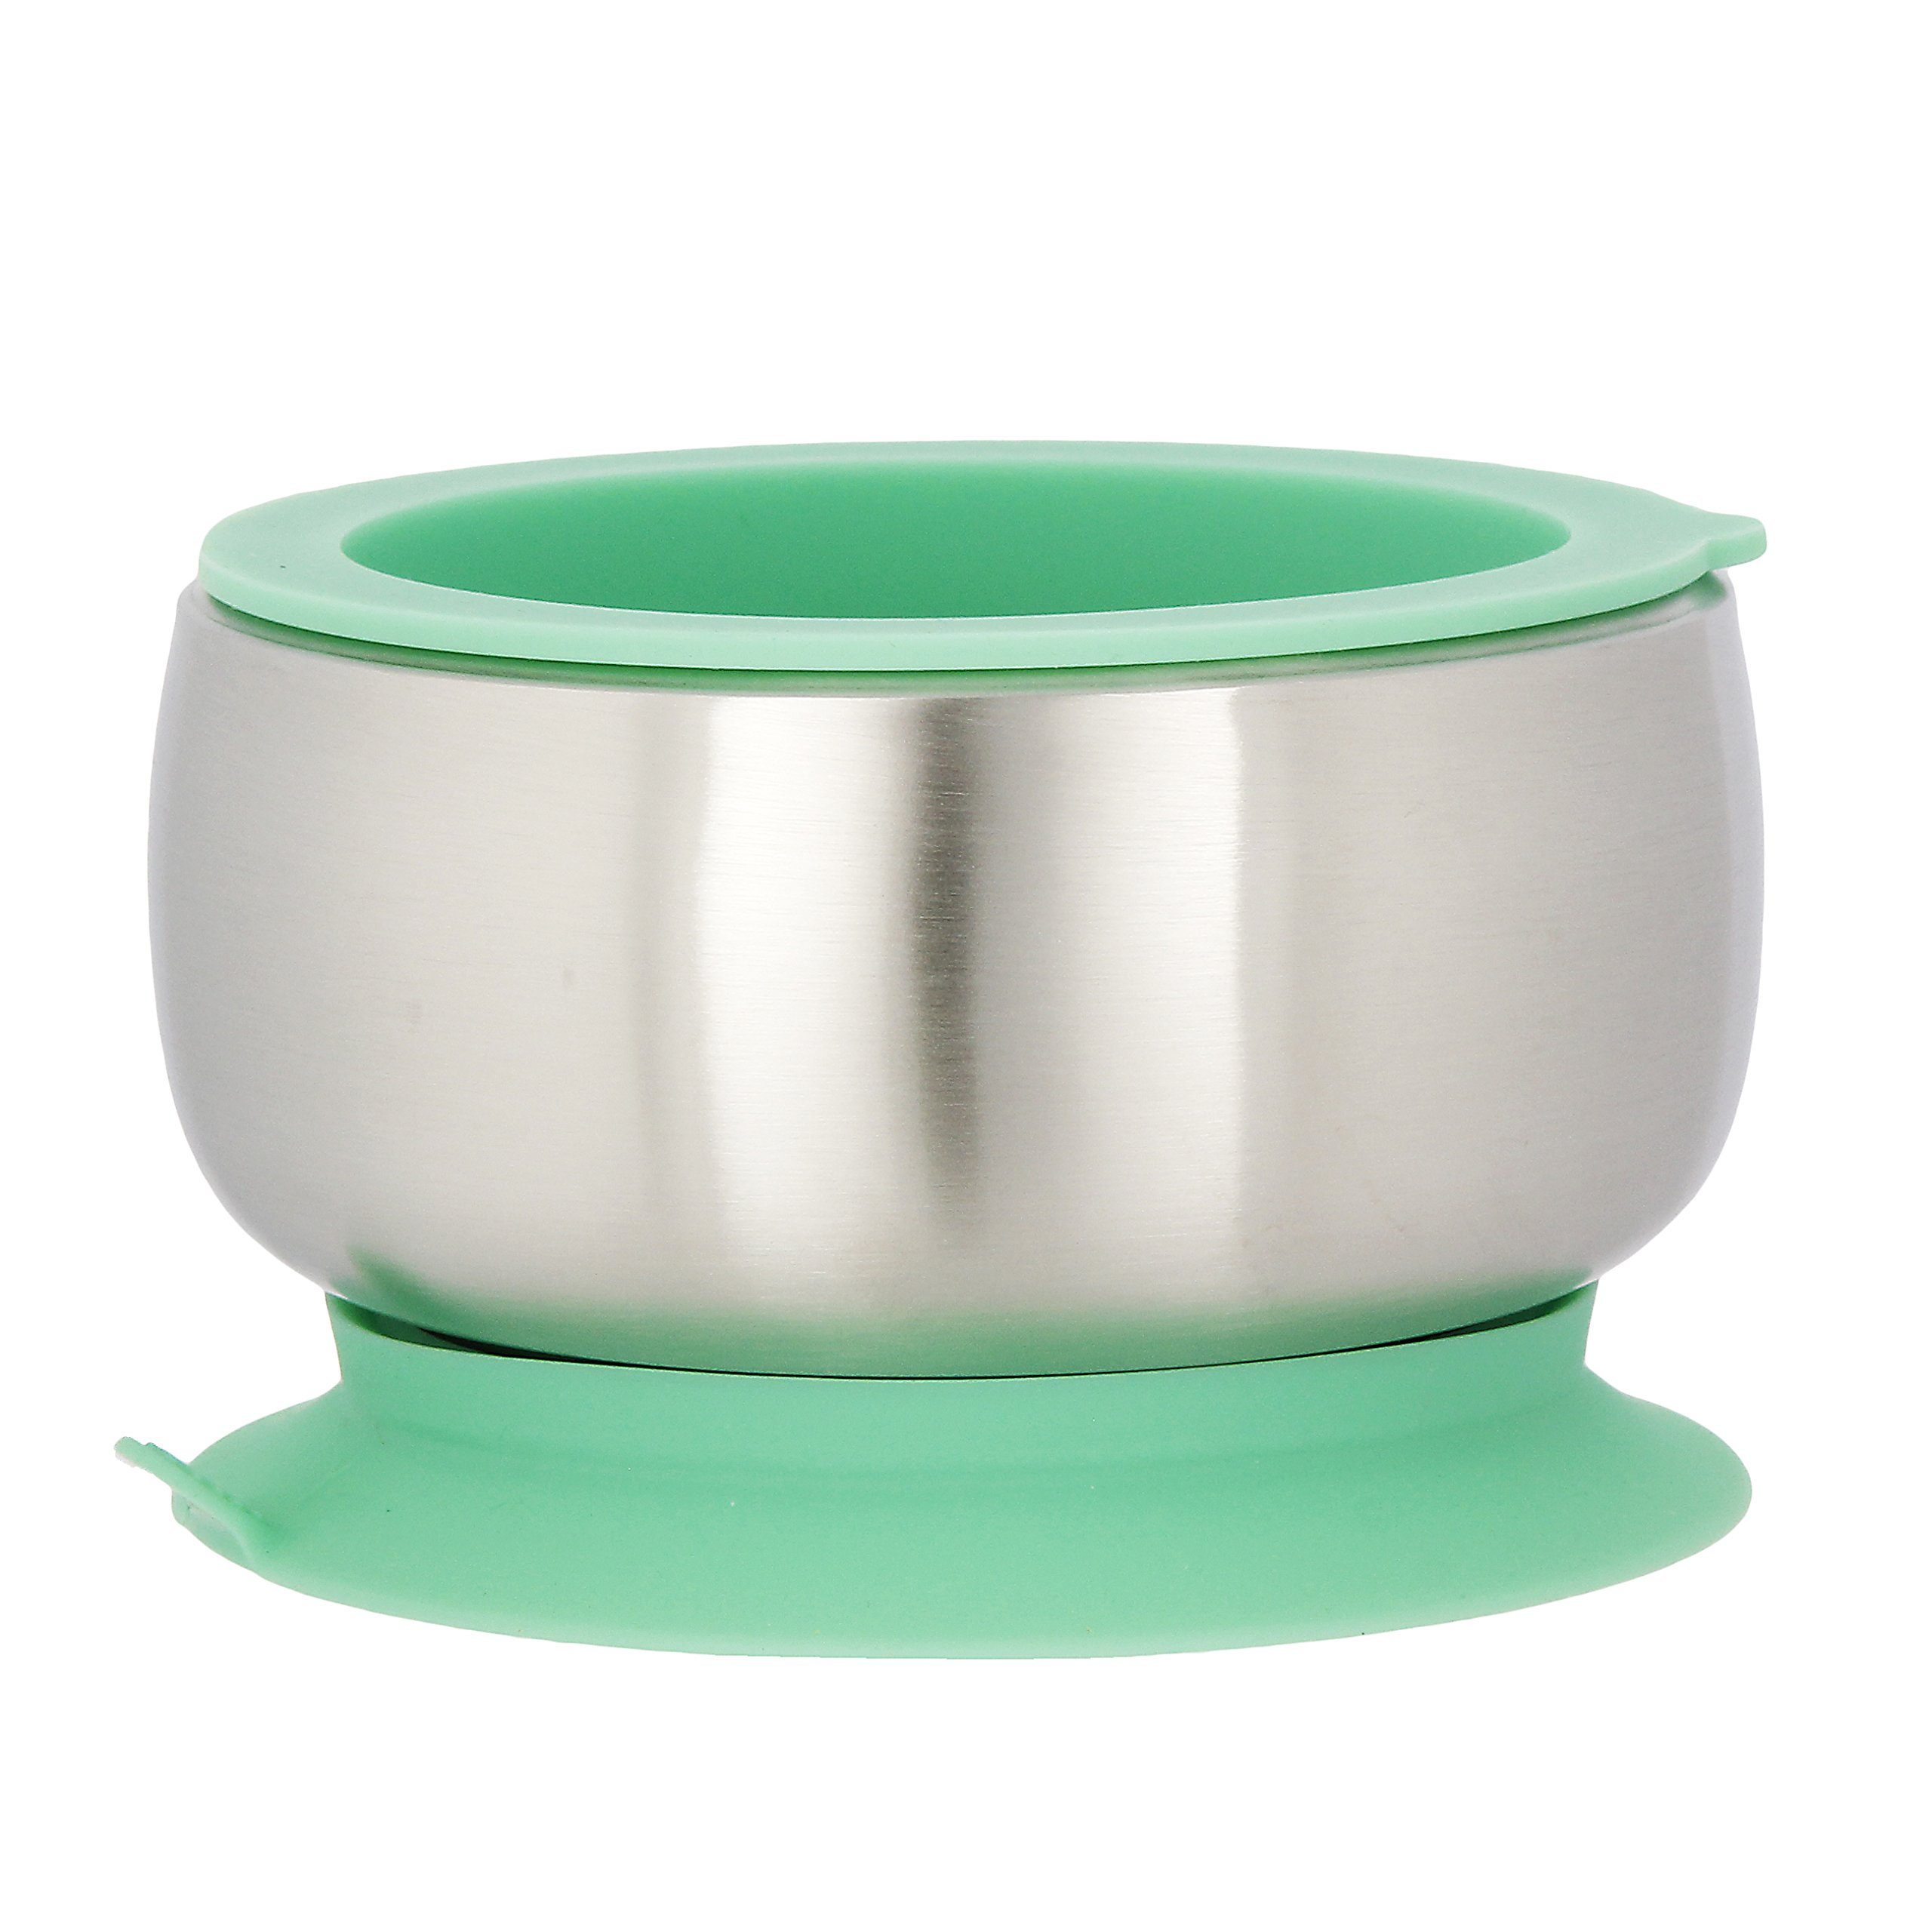 Analytical Non Slip Baby Warming Plate Spill Proof Suction Bowl Keep Food Warm Container High Safety Bowls & Plates Cups, Dishes & Utensils